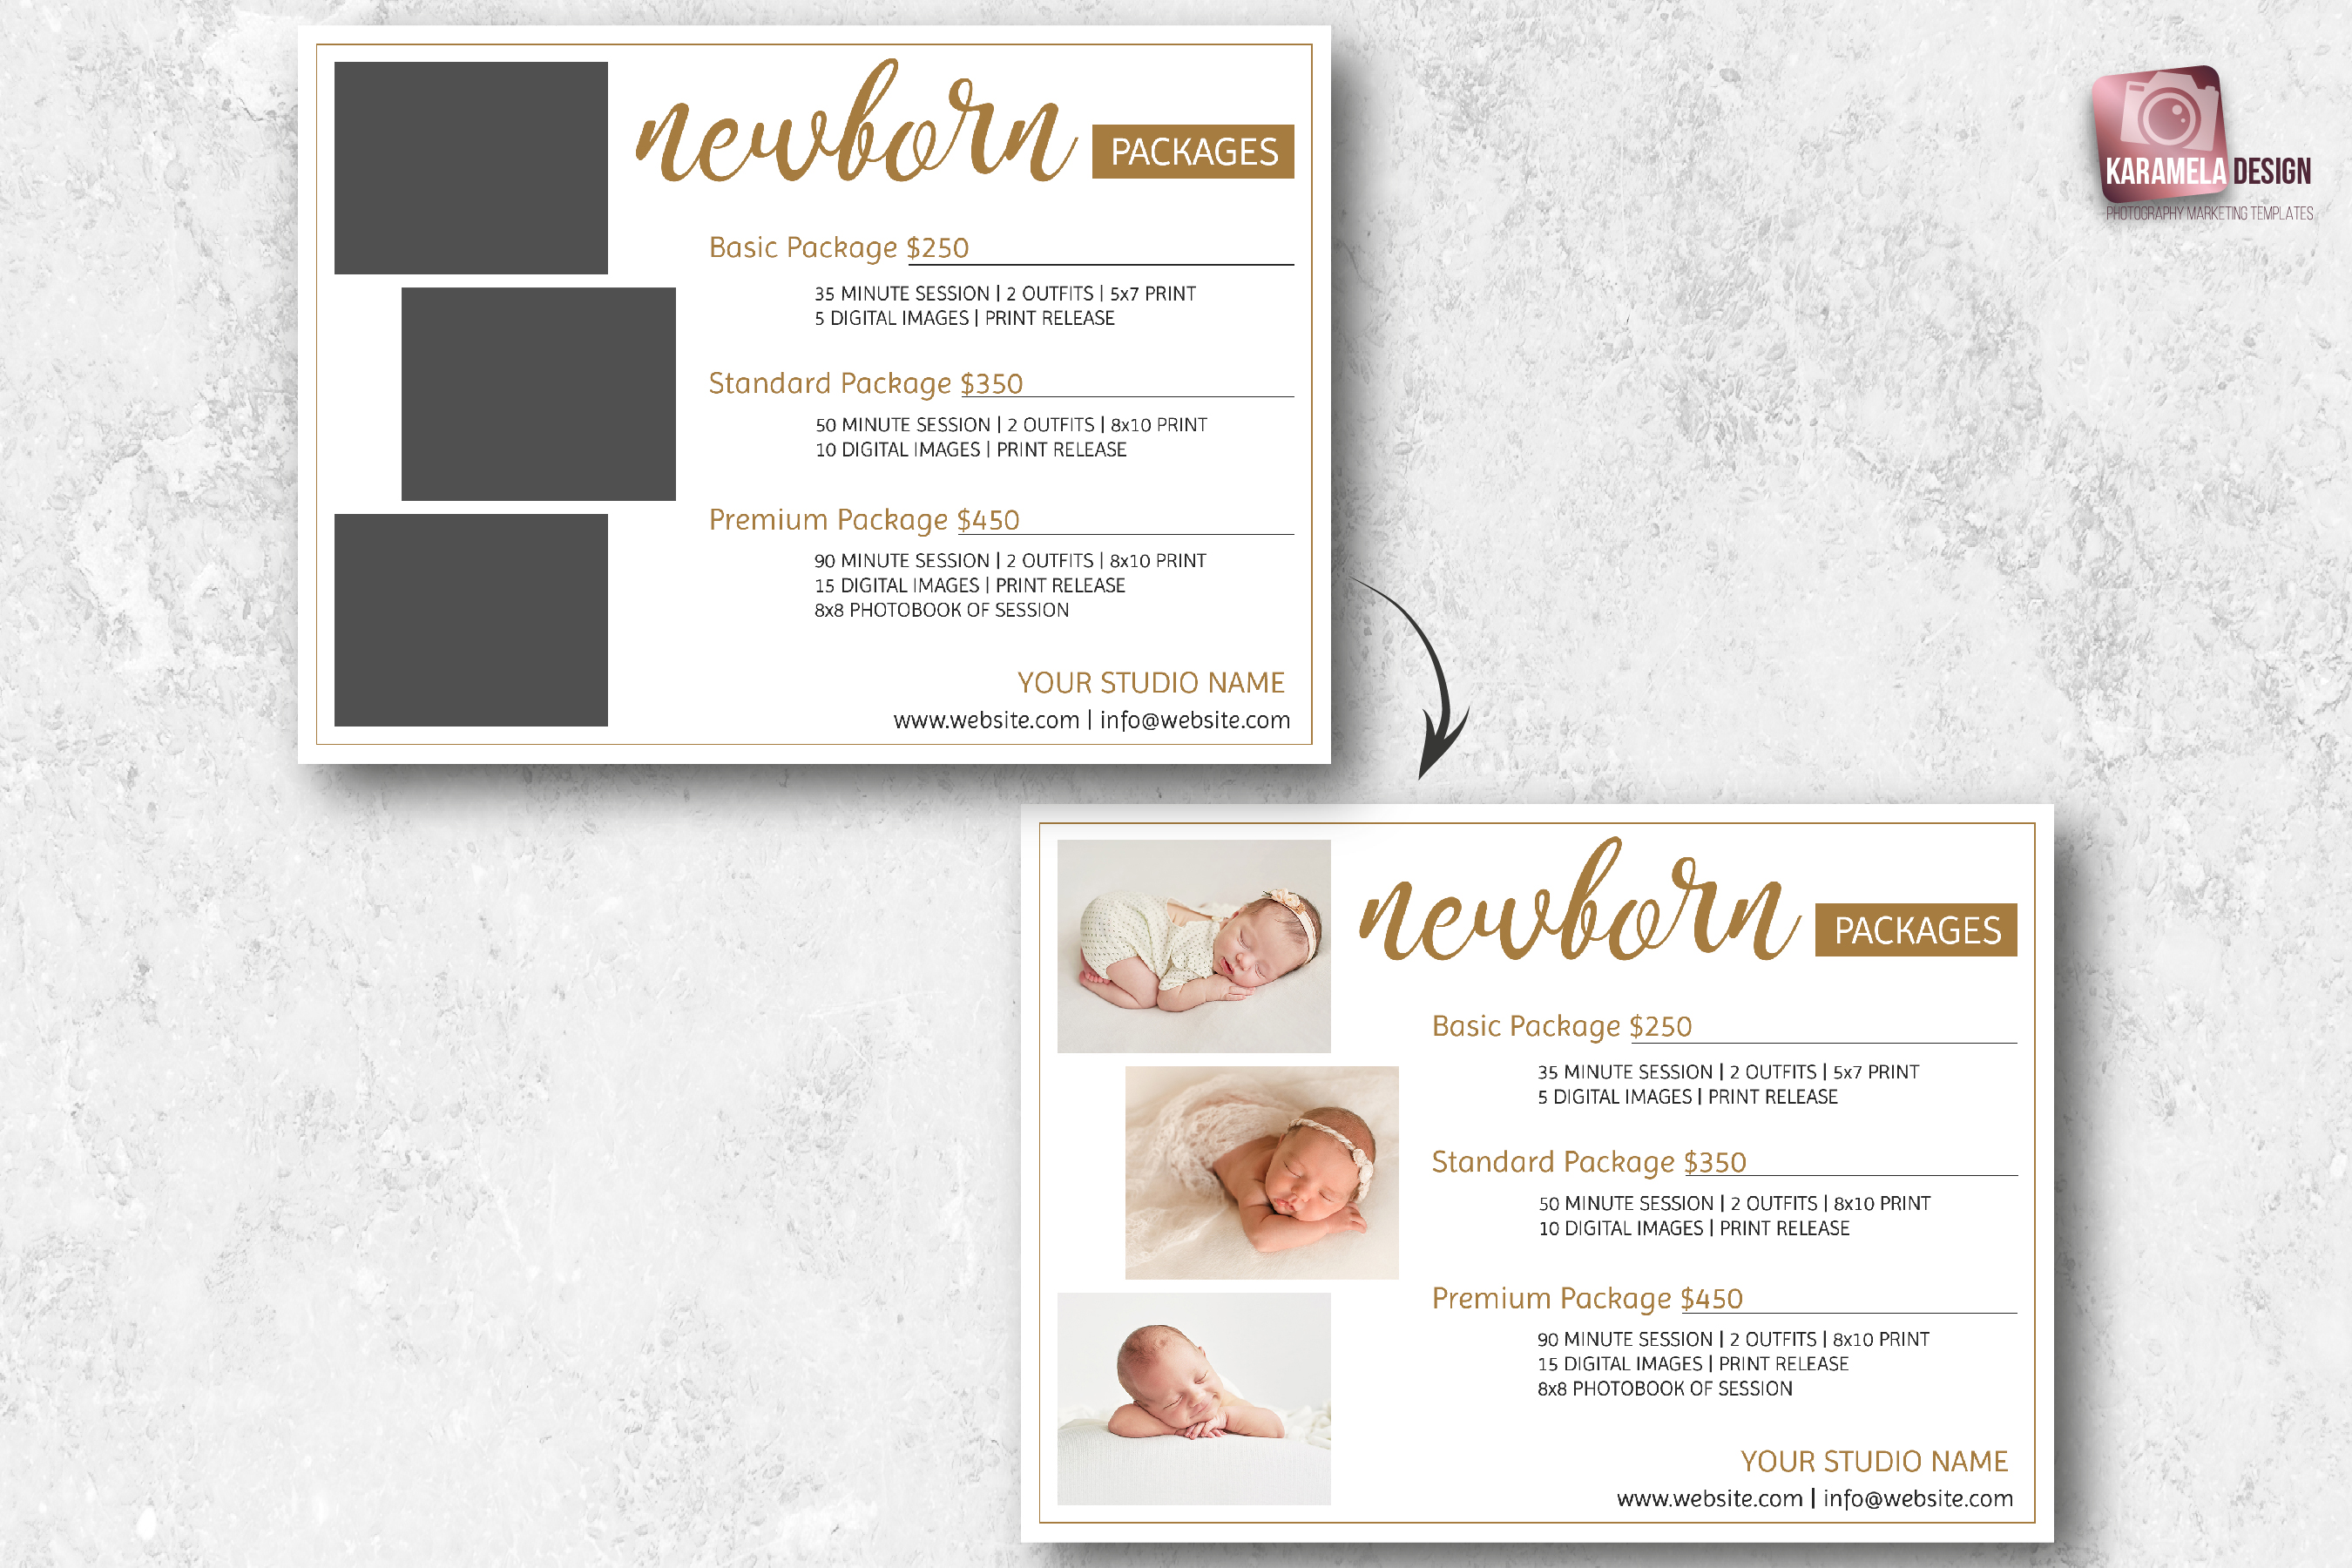 Newborn Photography Pricing Guide Template example image 2